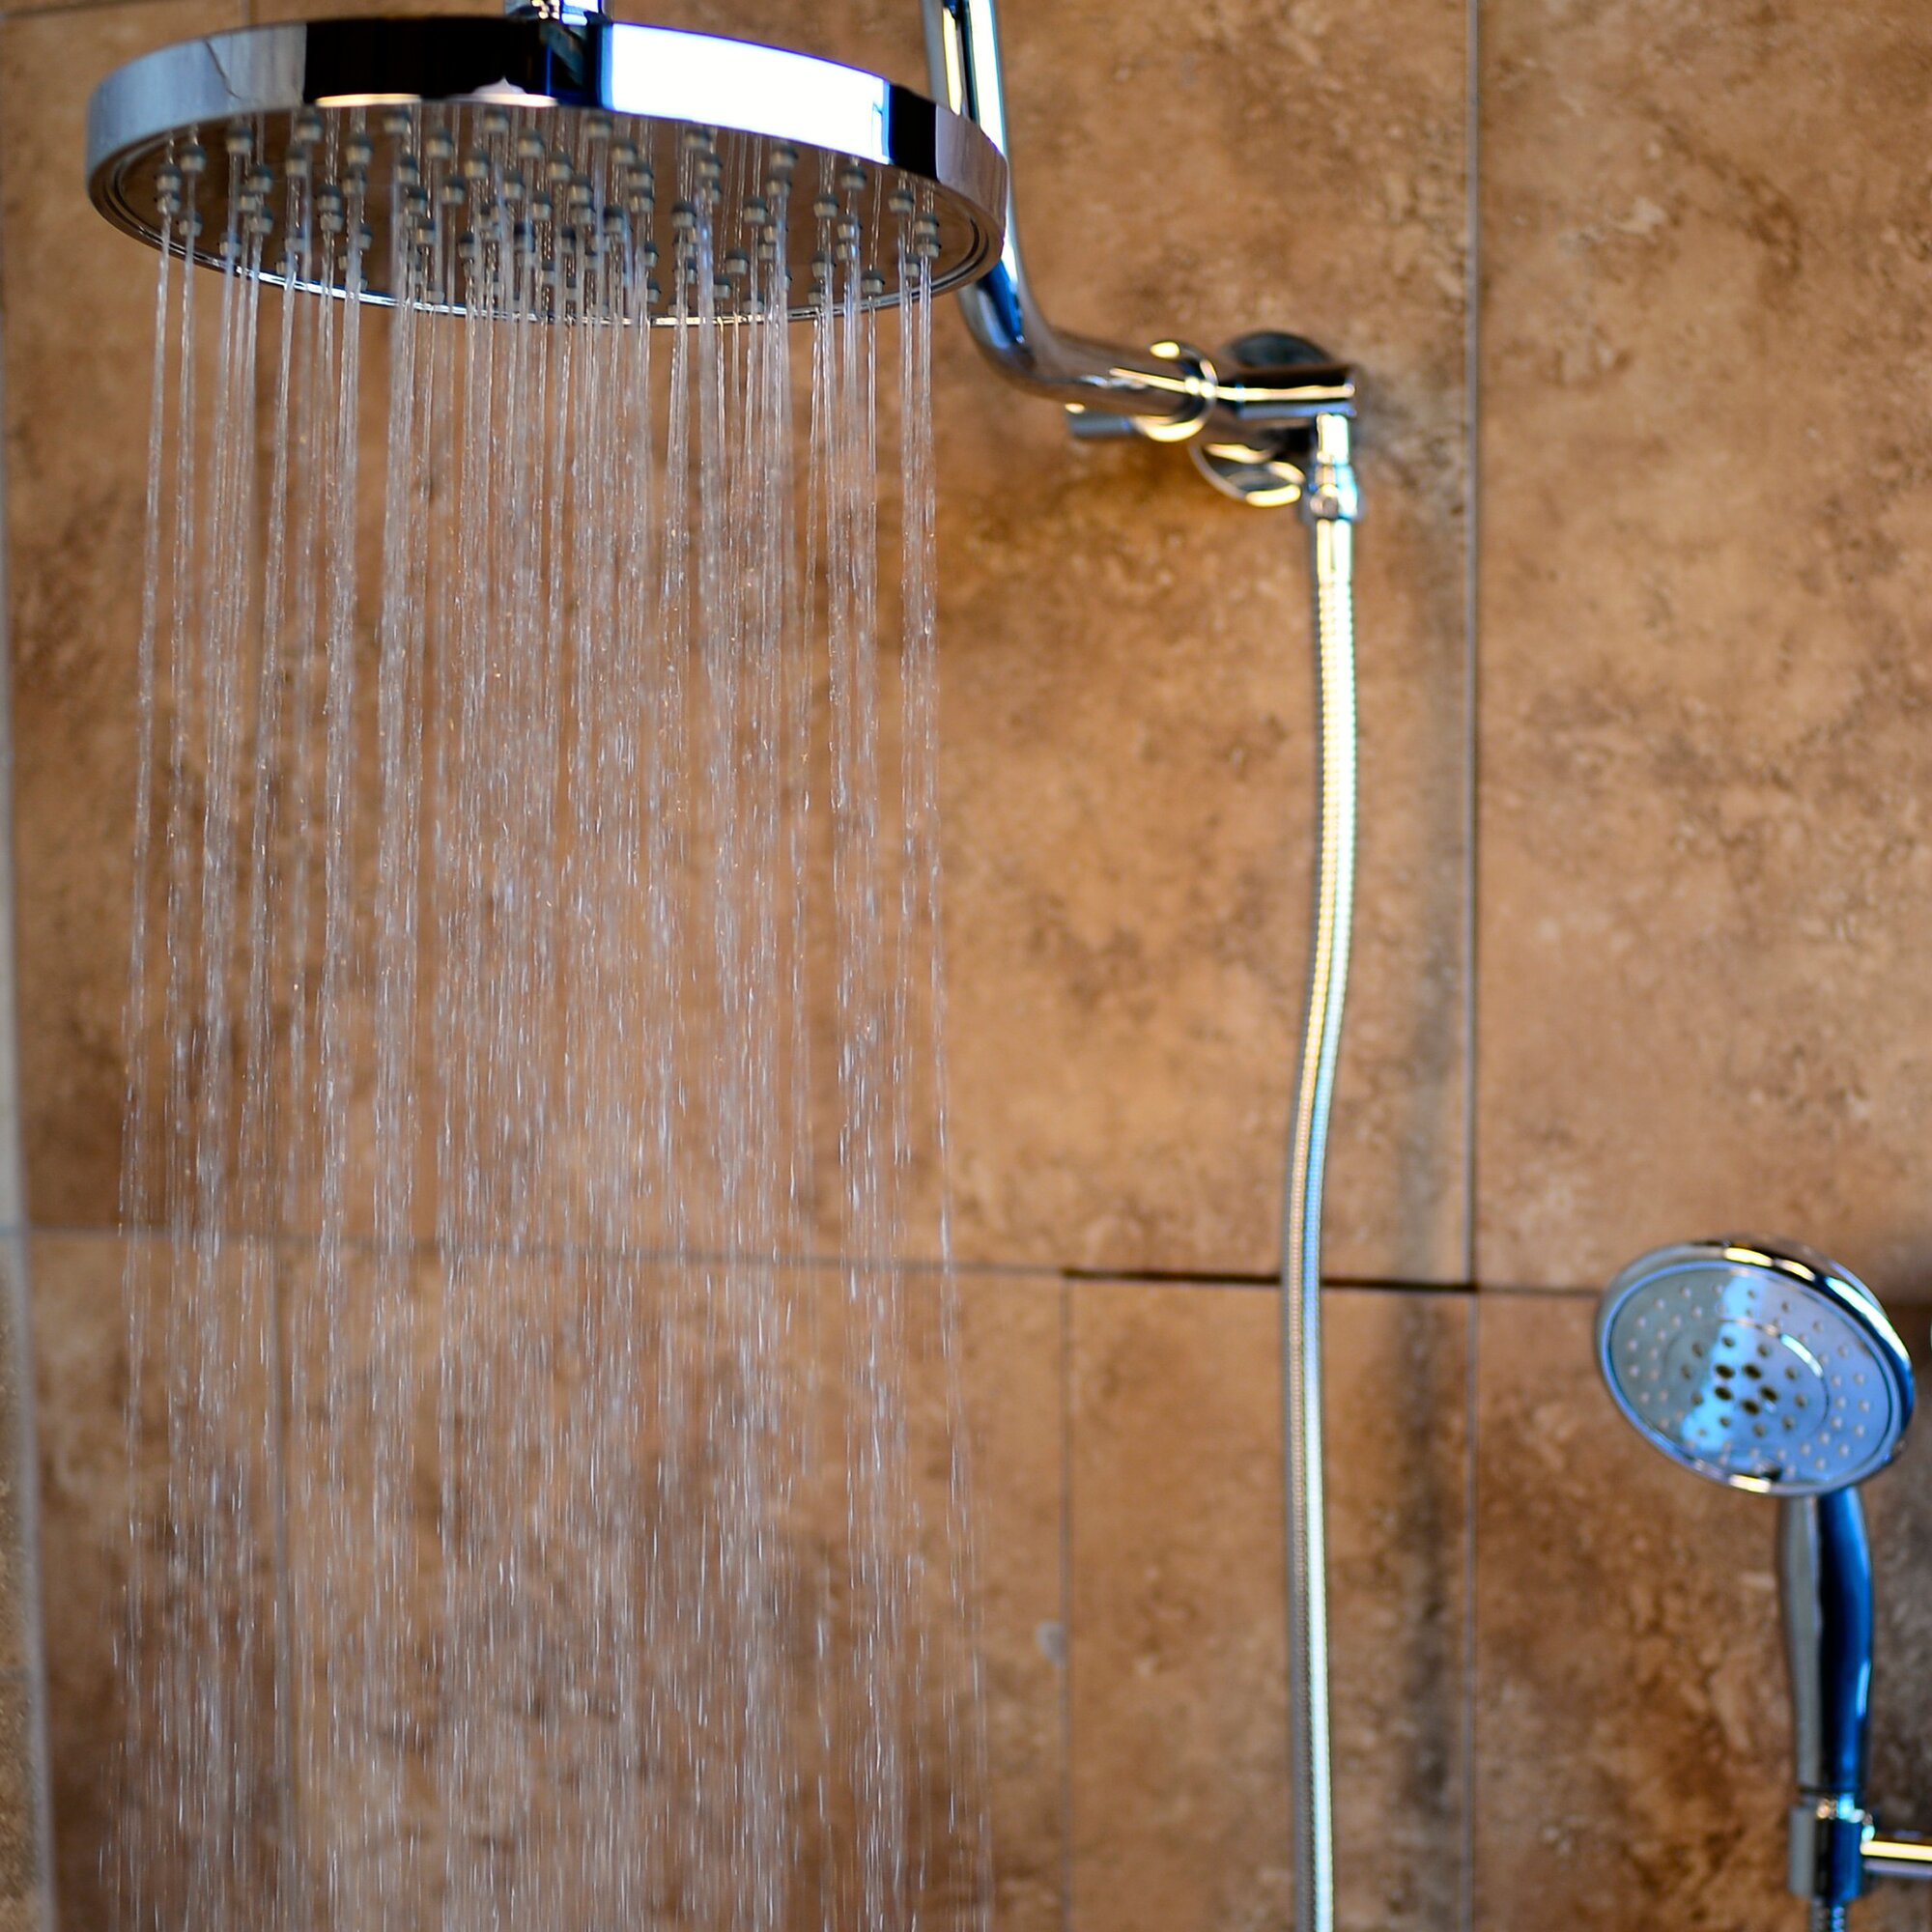 shower systems with rain head. Pulse Shower Spas Aqua Rain Diverter Complete System  systems with rain head Kristal Thermostatic With 12 Square Head Ceiling